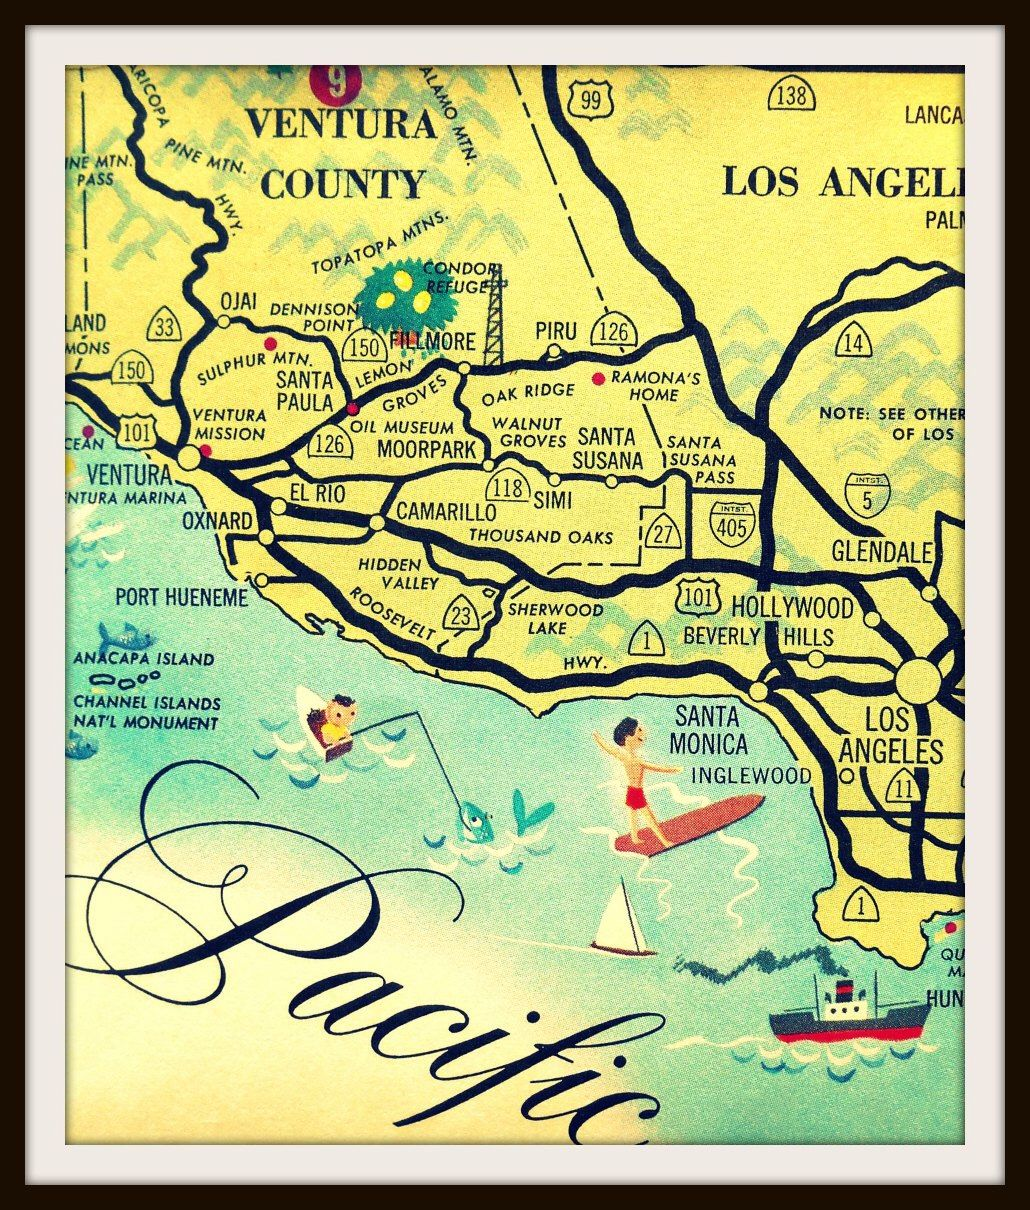 Pin by Mary Finstad on Art & Inspiration | California map ...